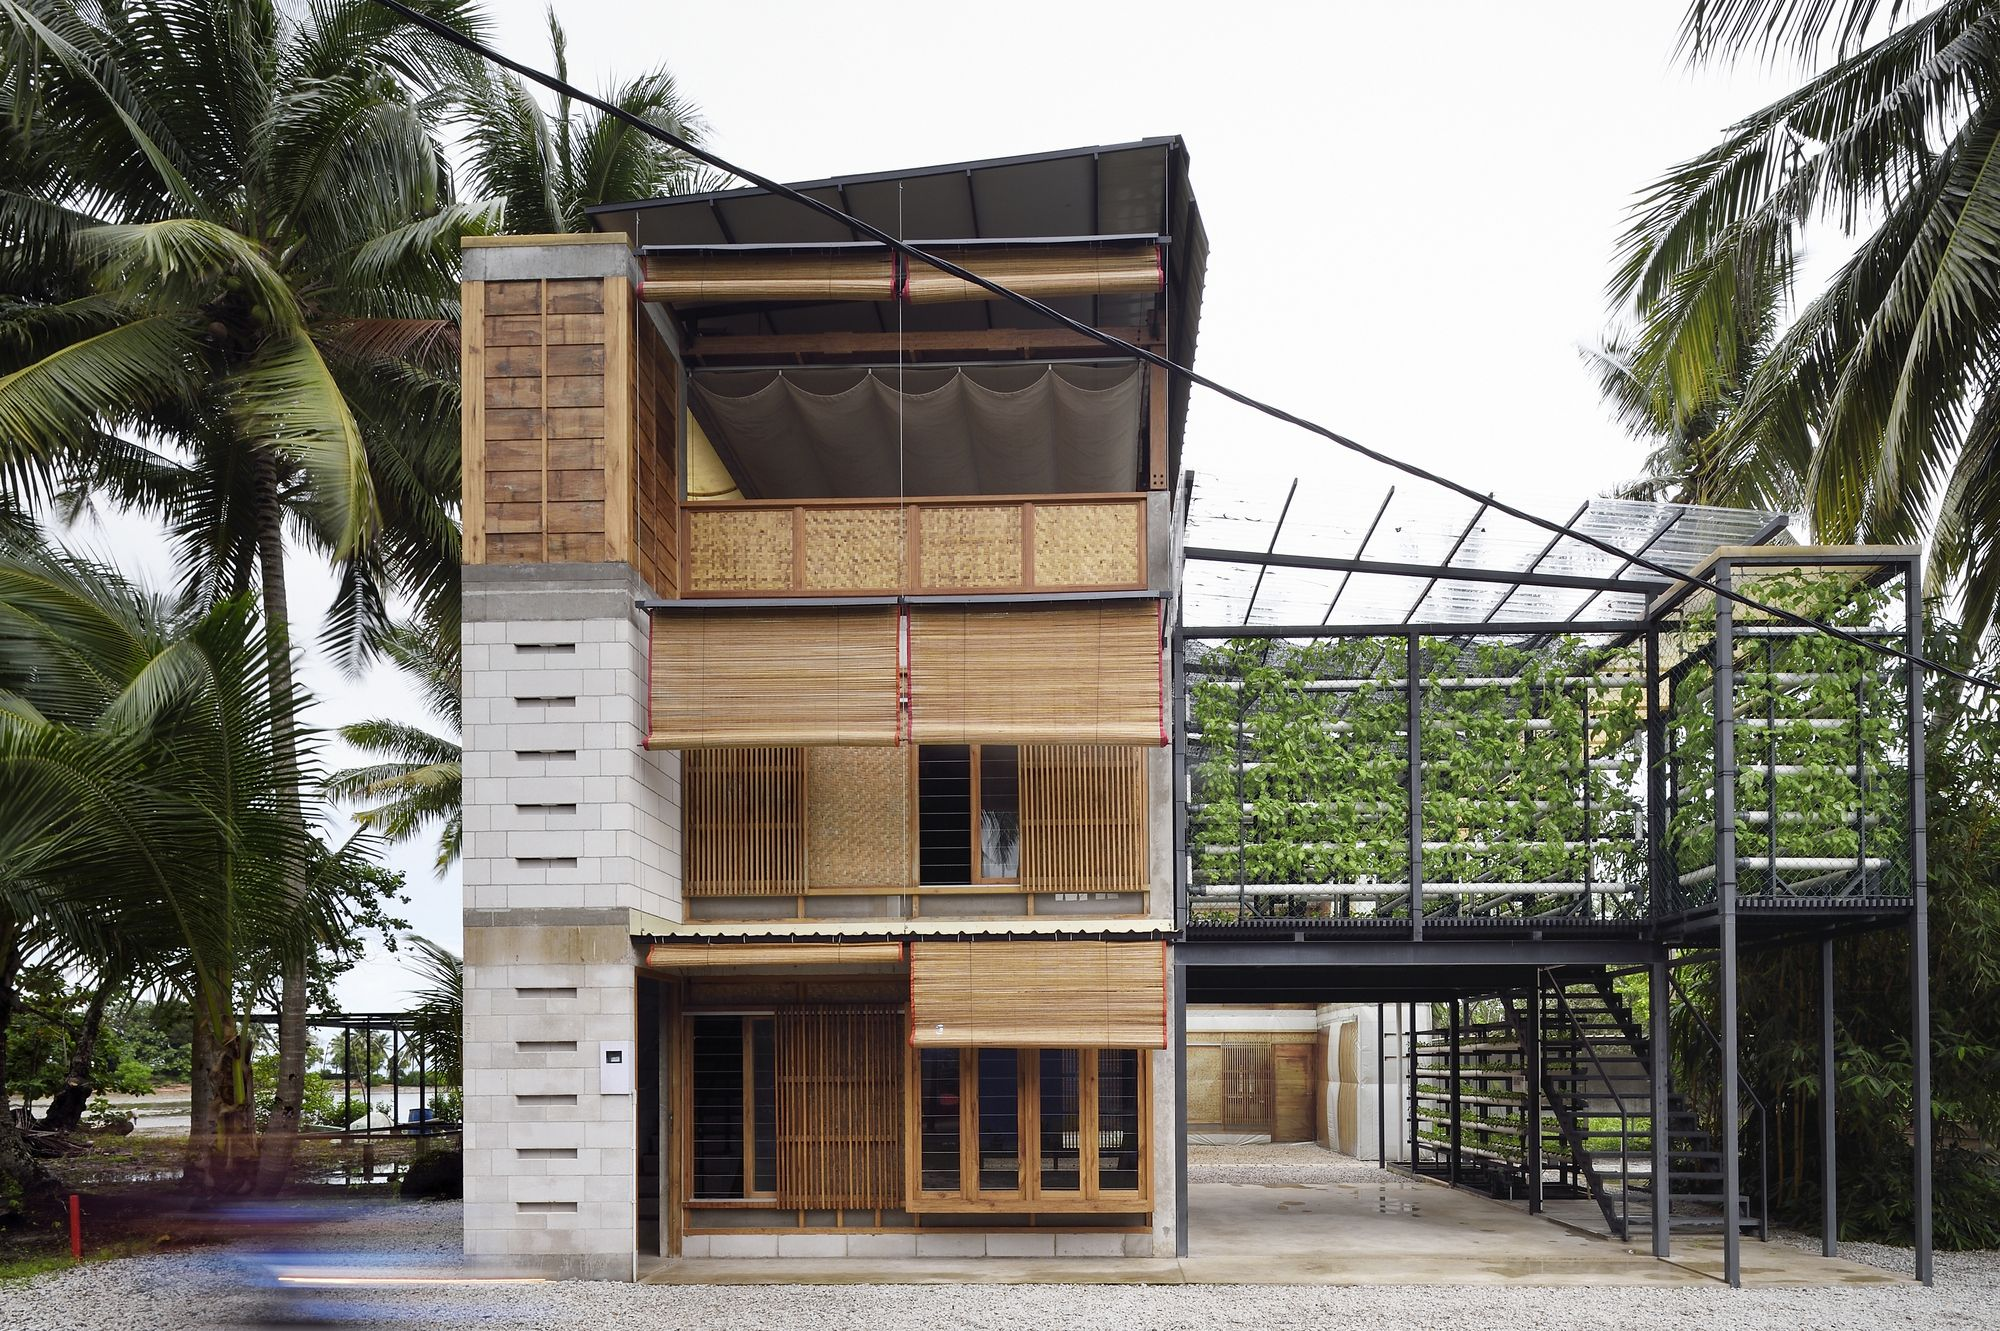 Expandable House Part 02 Urban Rural Systems In